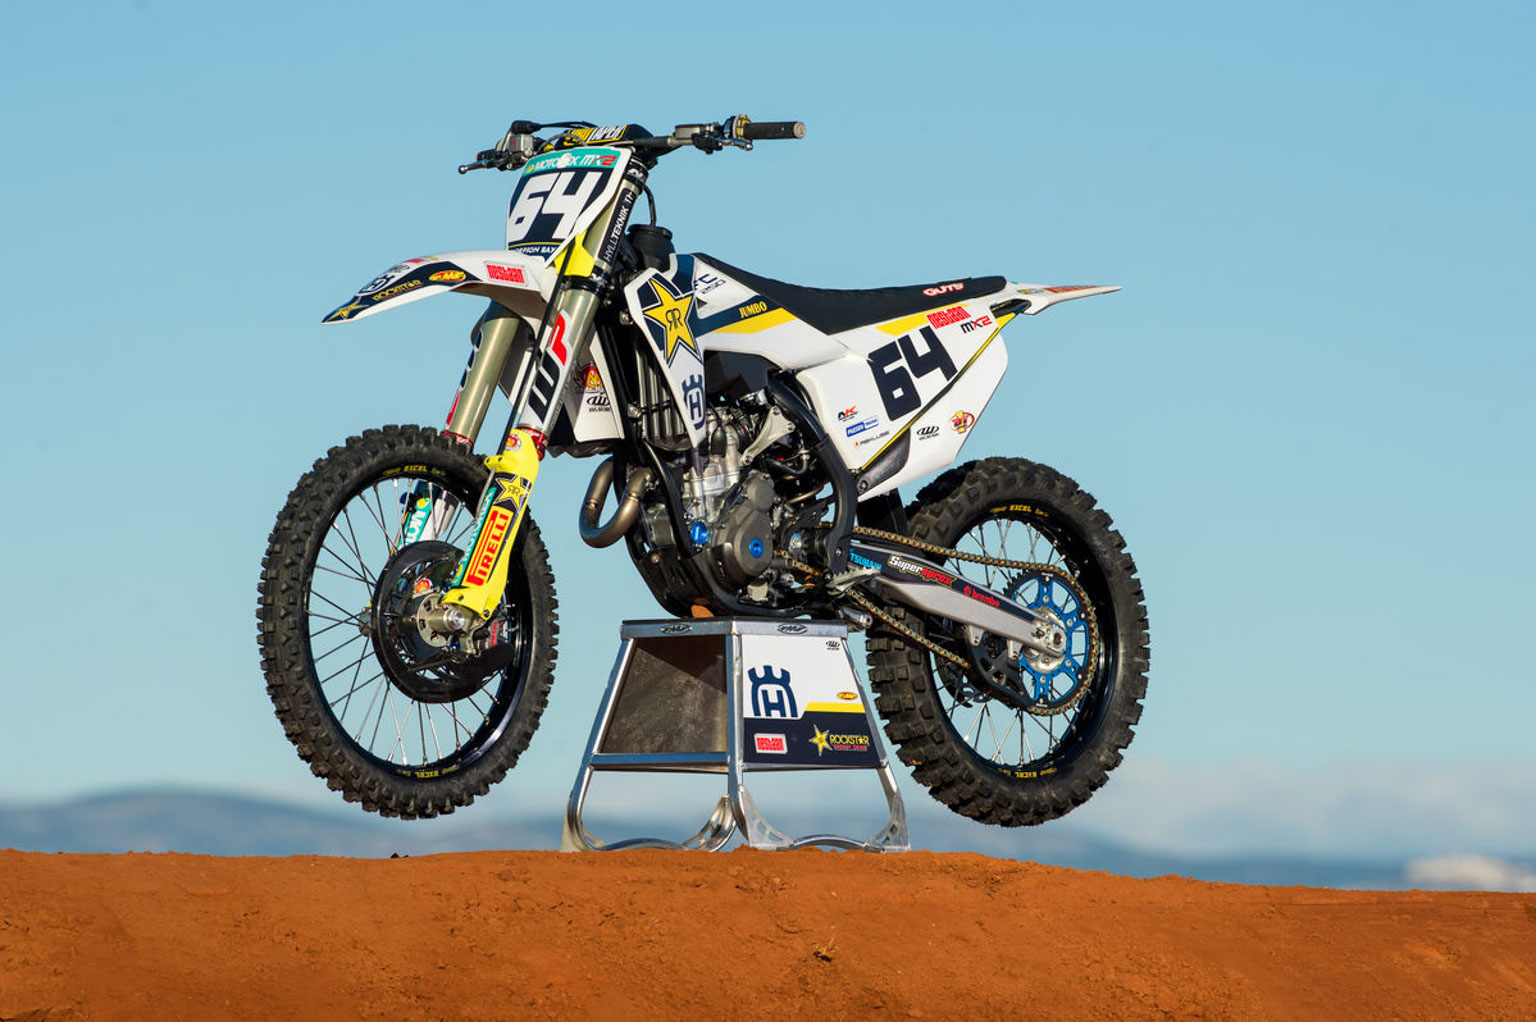 42342_Covington_Bike_Rockstar Energy Husqvarna MX2 Factory Racing_shotbybavo_5